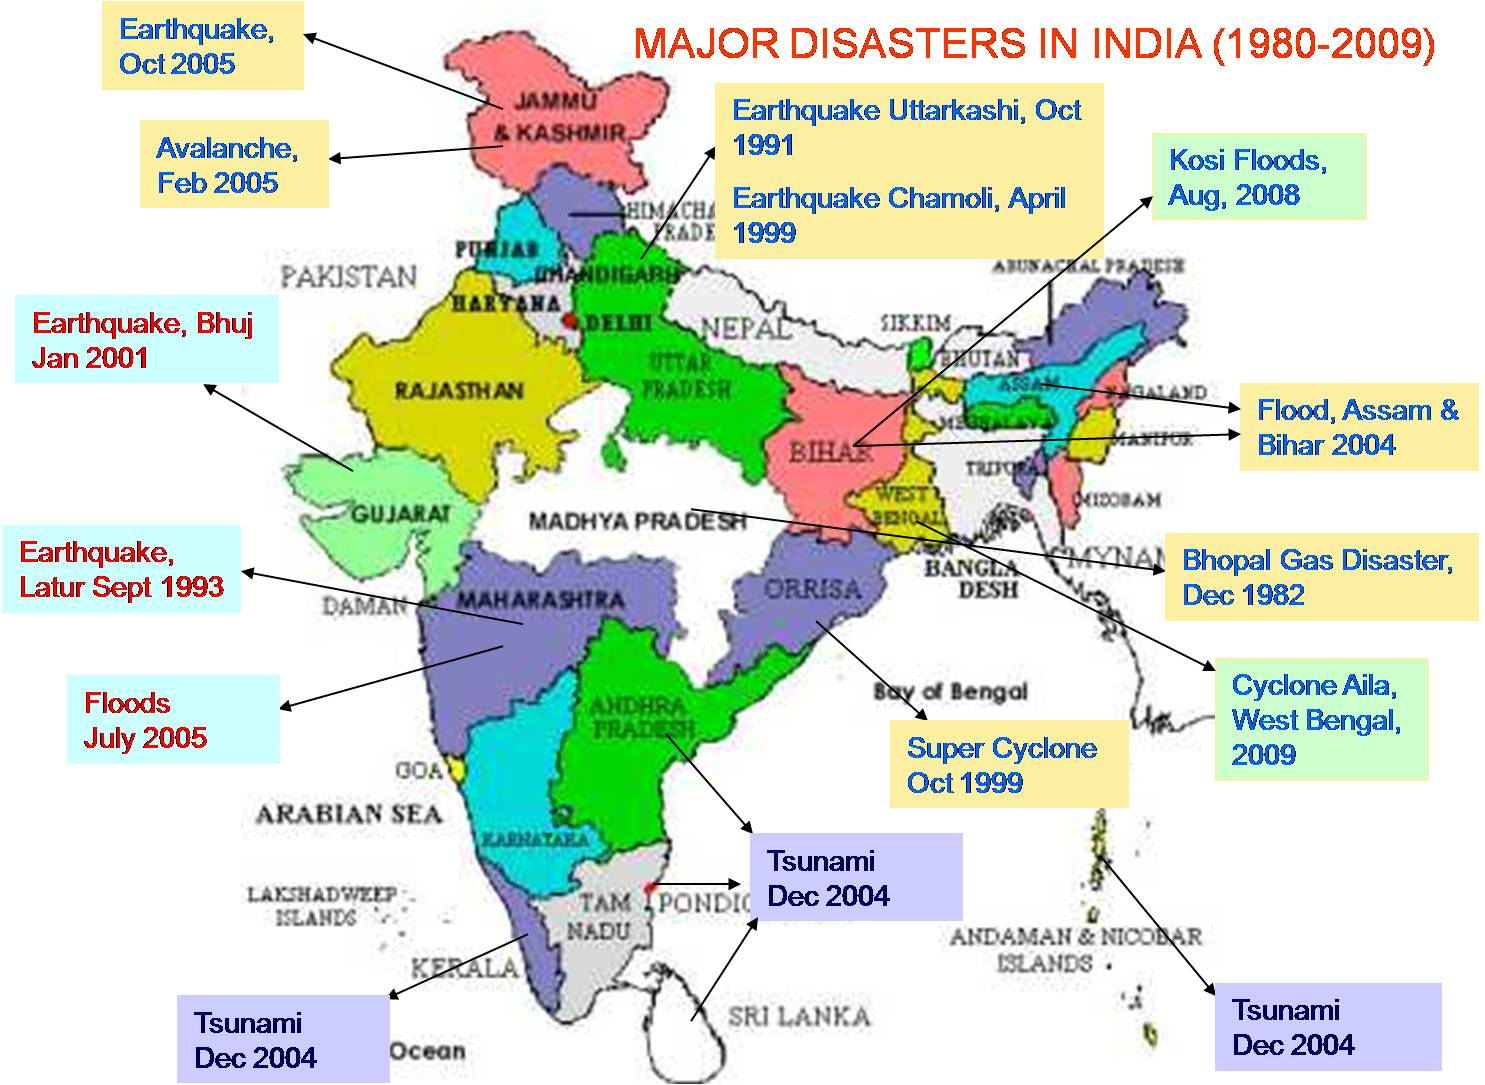 Description Major Disasters in India.jpg